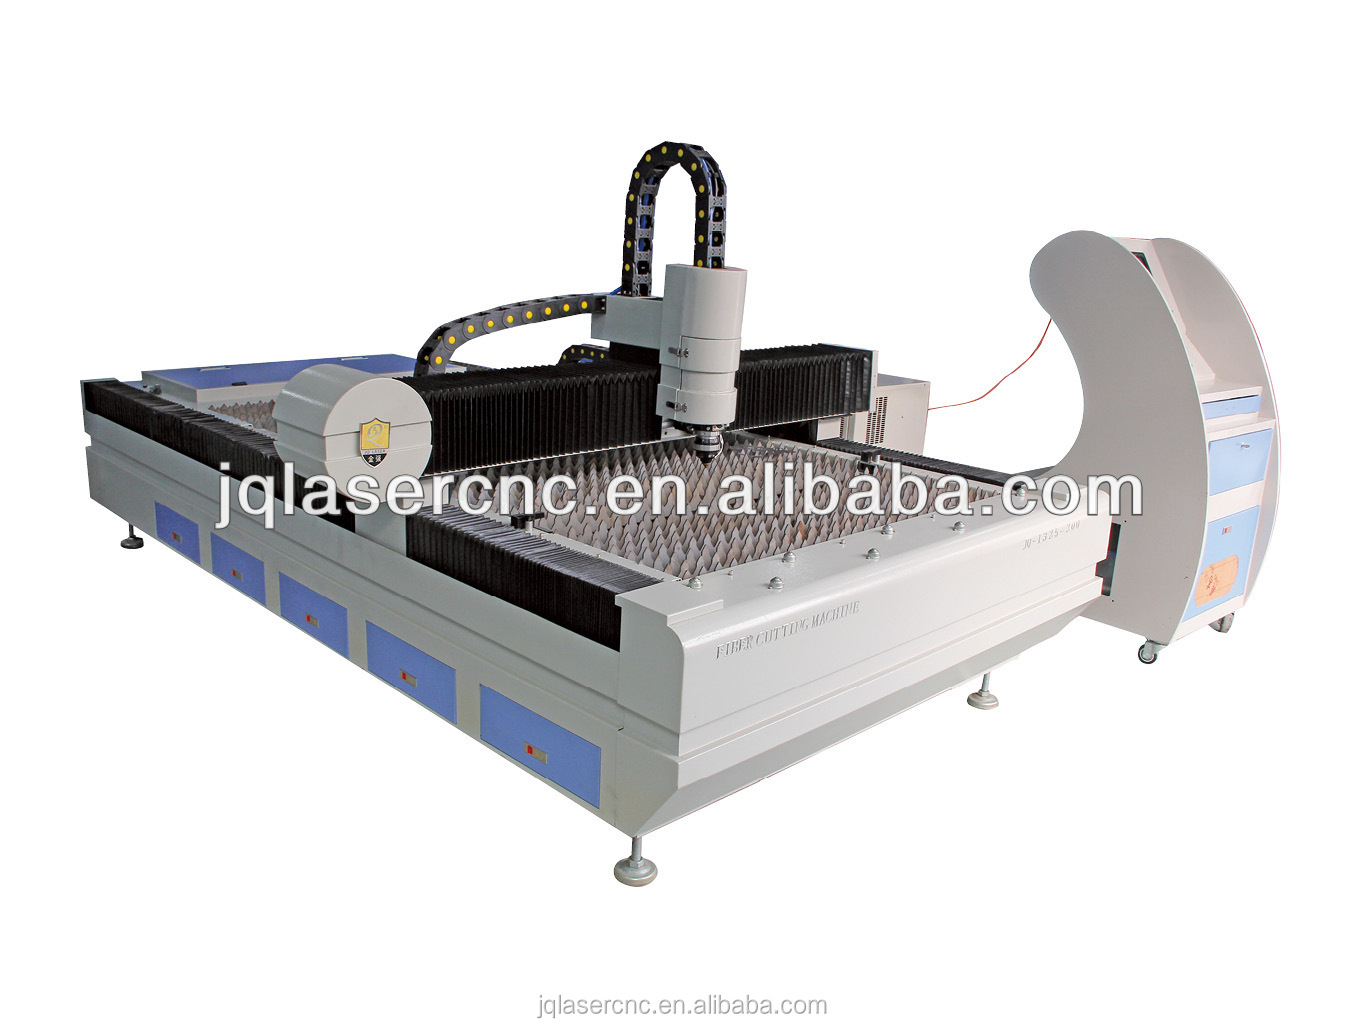 tubular key cutter metal cutter machine